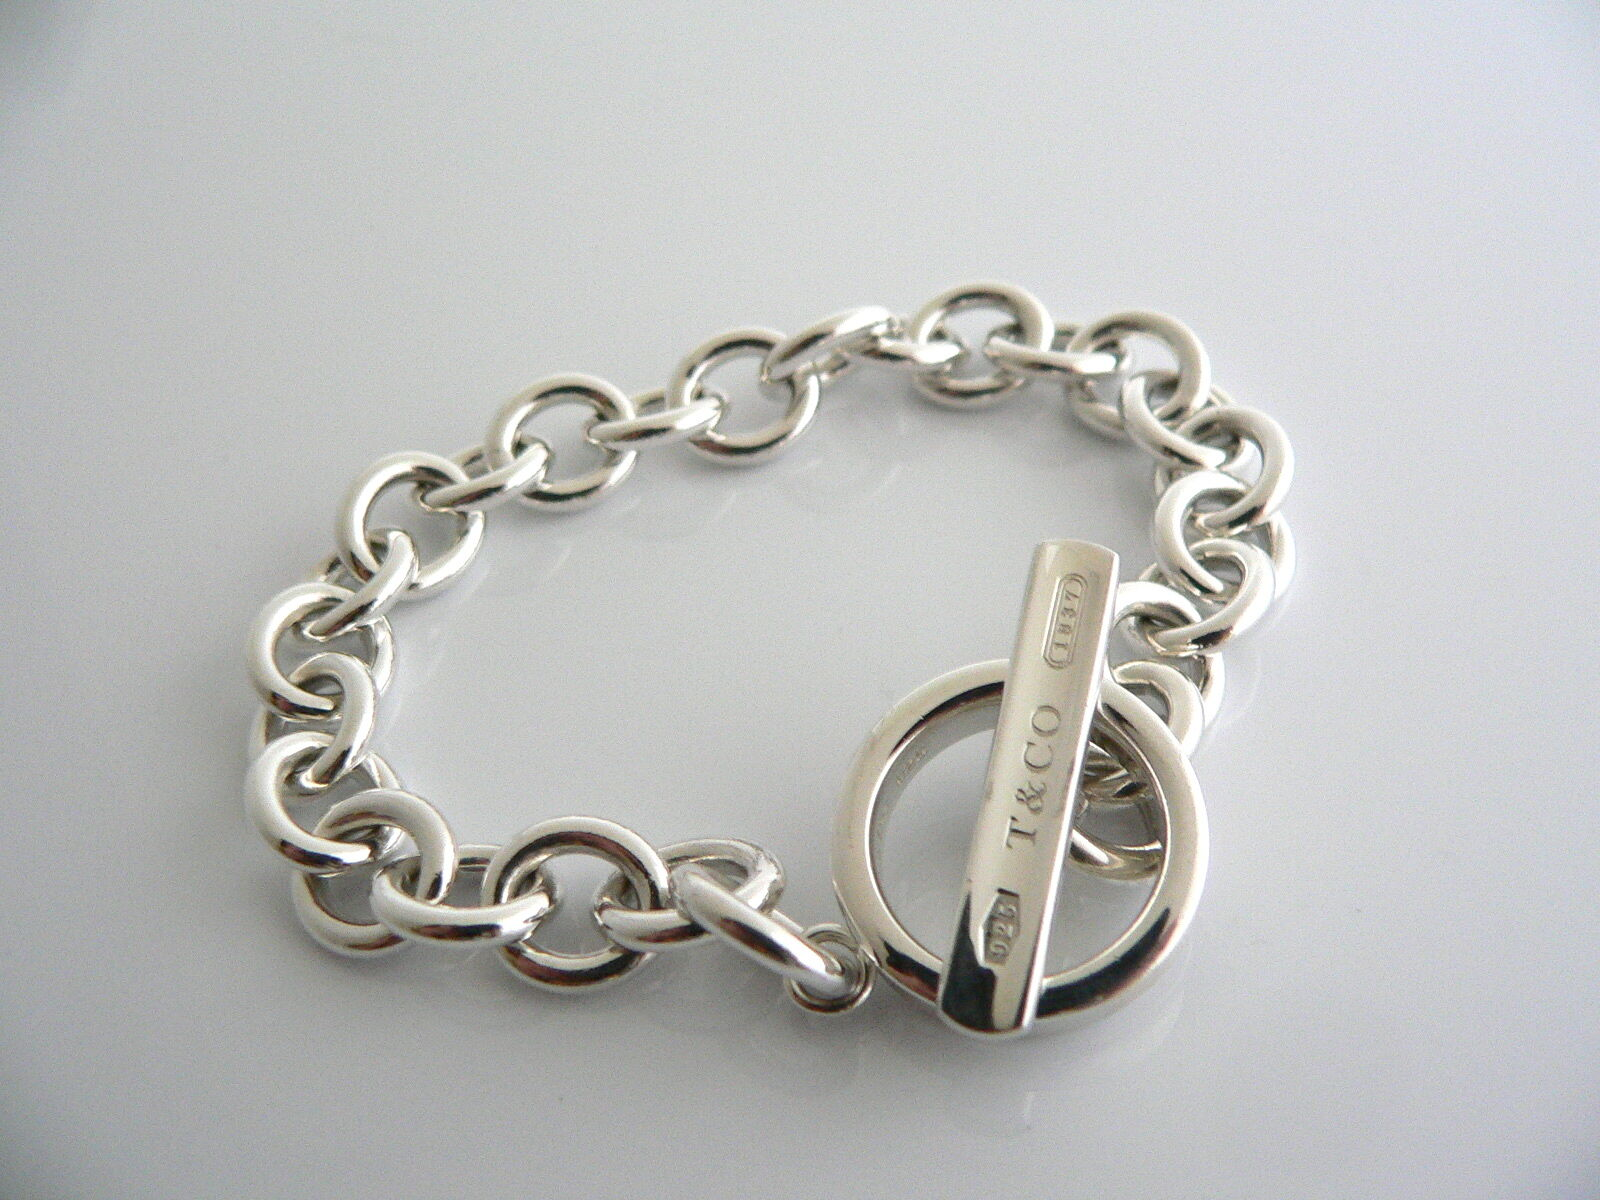 Tiffany & Co Silver 1837 Toggle Bracelet Bangle 8 Inch Chain Gift Love Statement